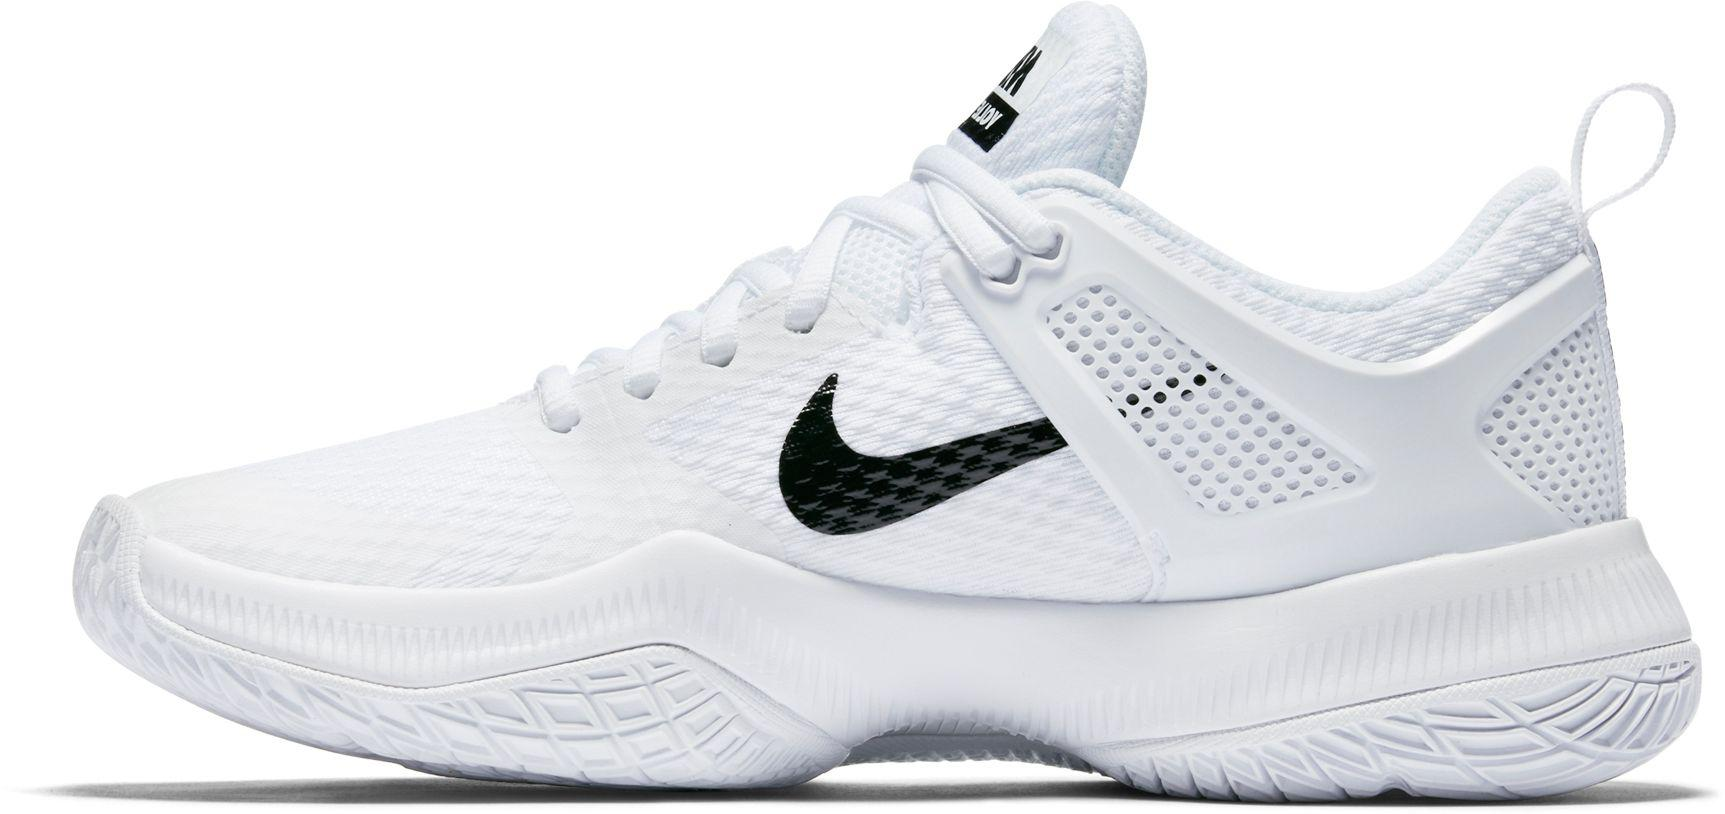 Lyst - Nike Air Zoom Hyperace Volleyball Shoes in White